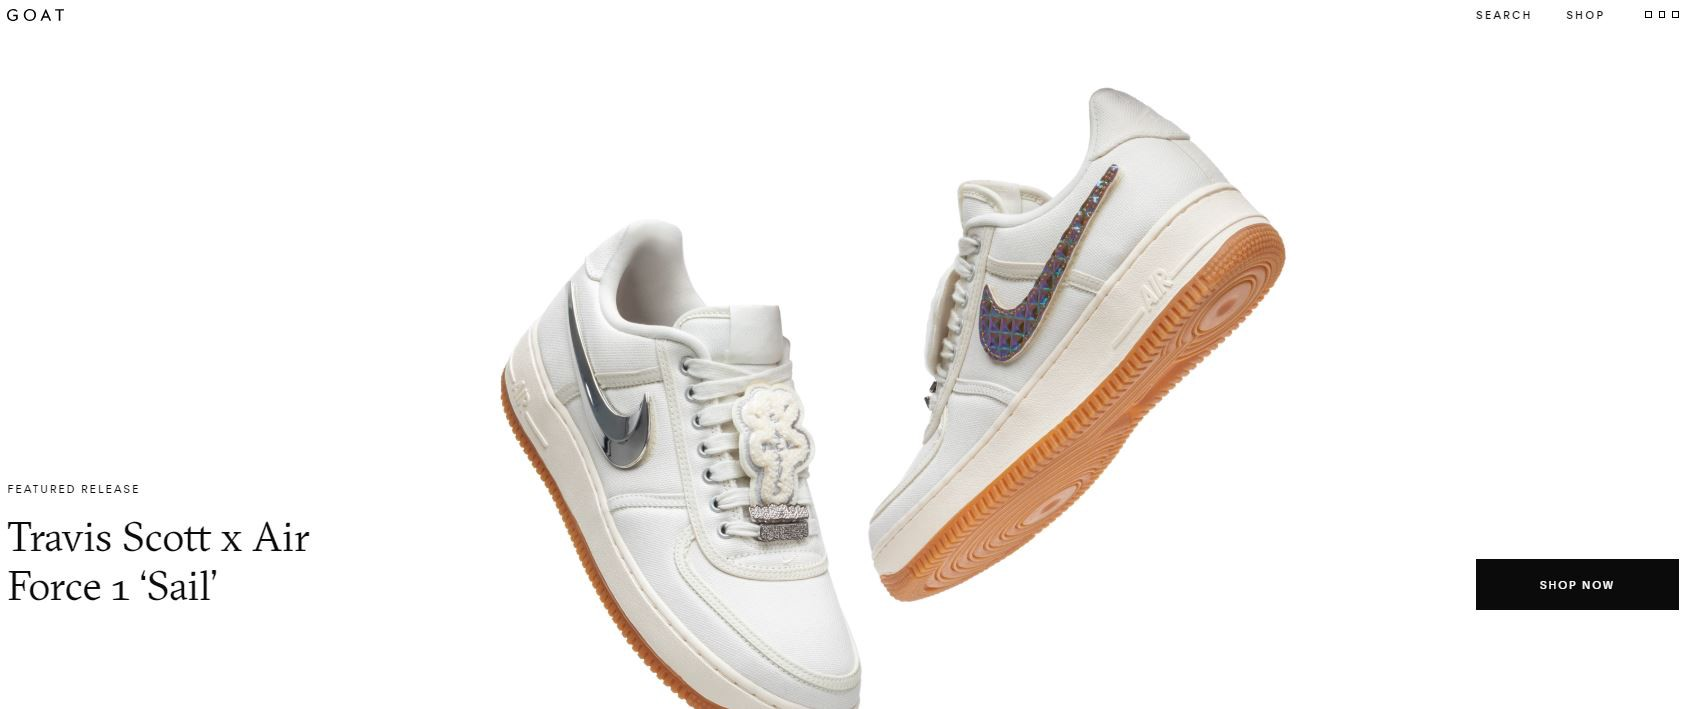 83a2d78e37d23 A Language for Sneakers  GOAT Applies AI in Product Management